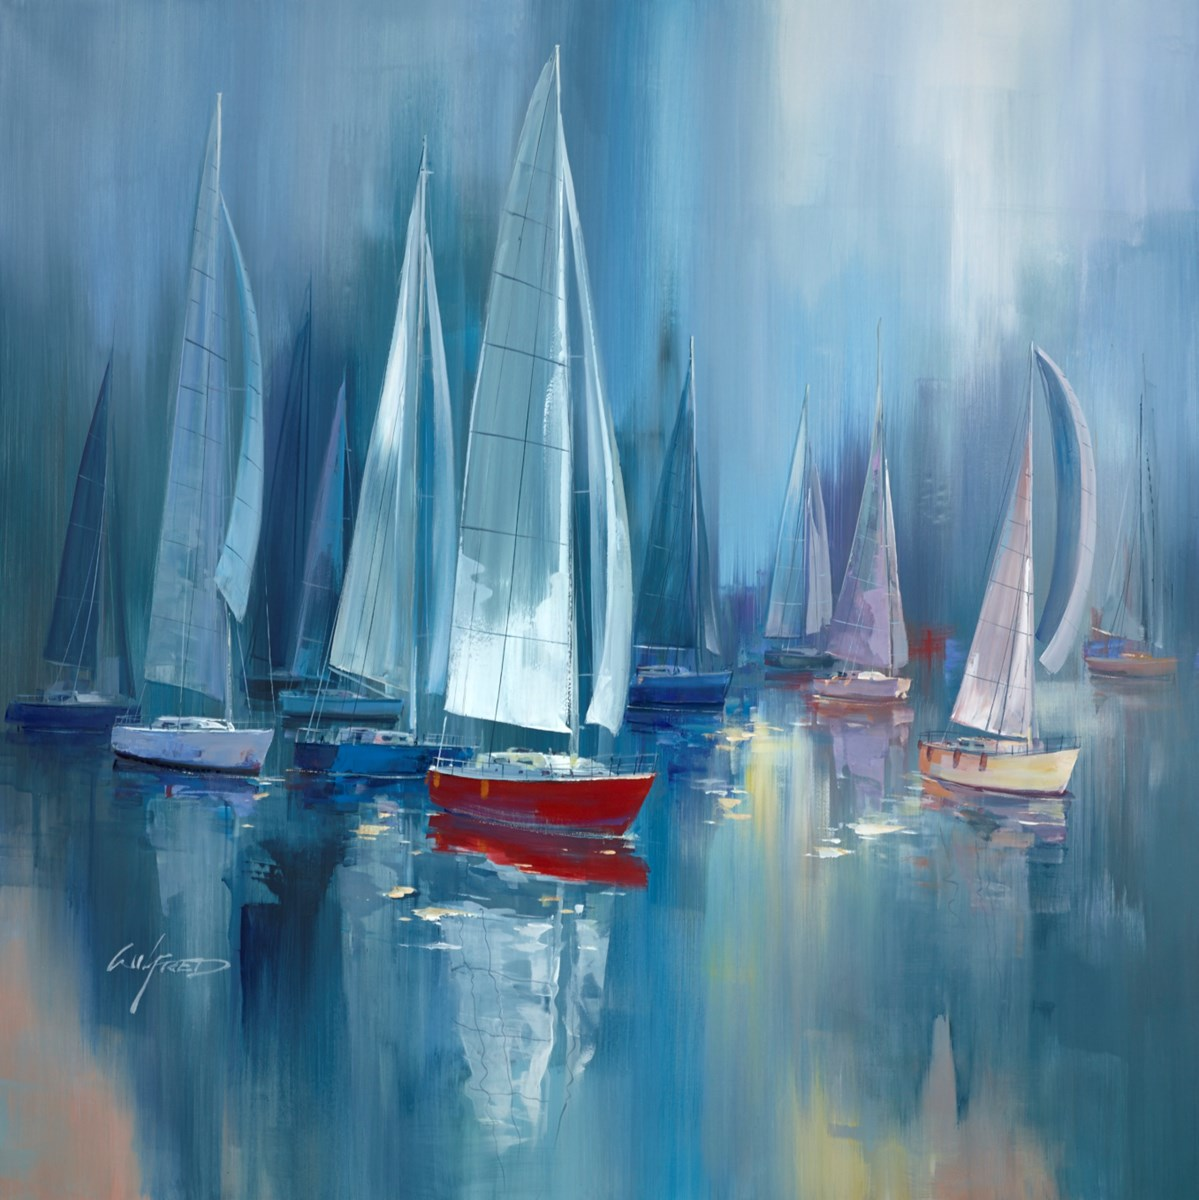 White Sails II by wilfred -  sized 38x38 inches. Available from Whitewall Galleries